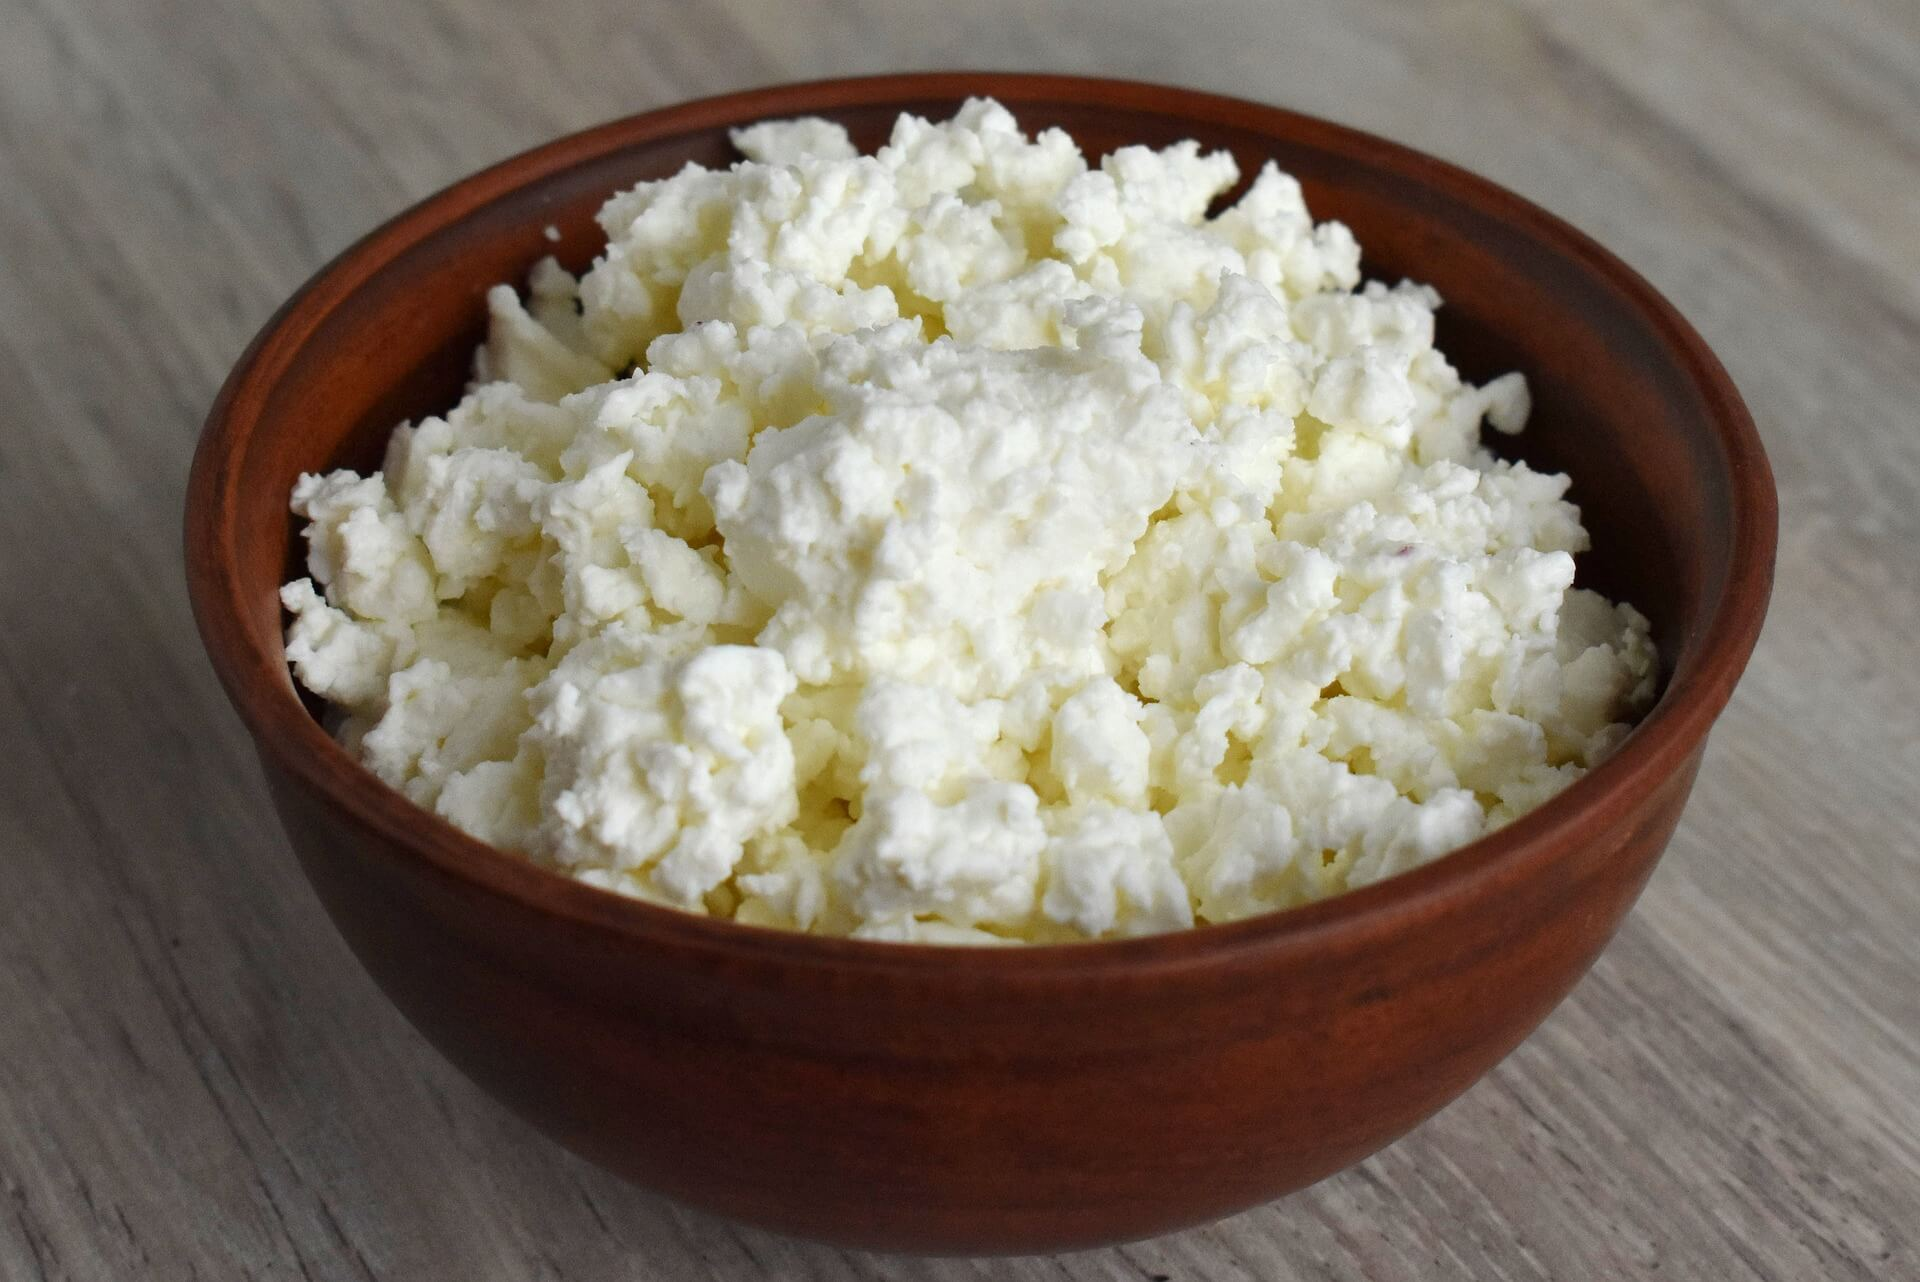 Photo by Enotovyj on Pixabay. Cottage cheese.